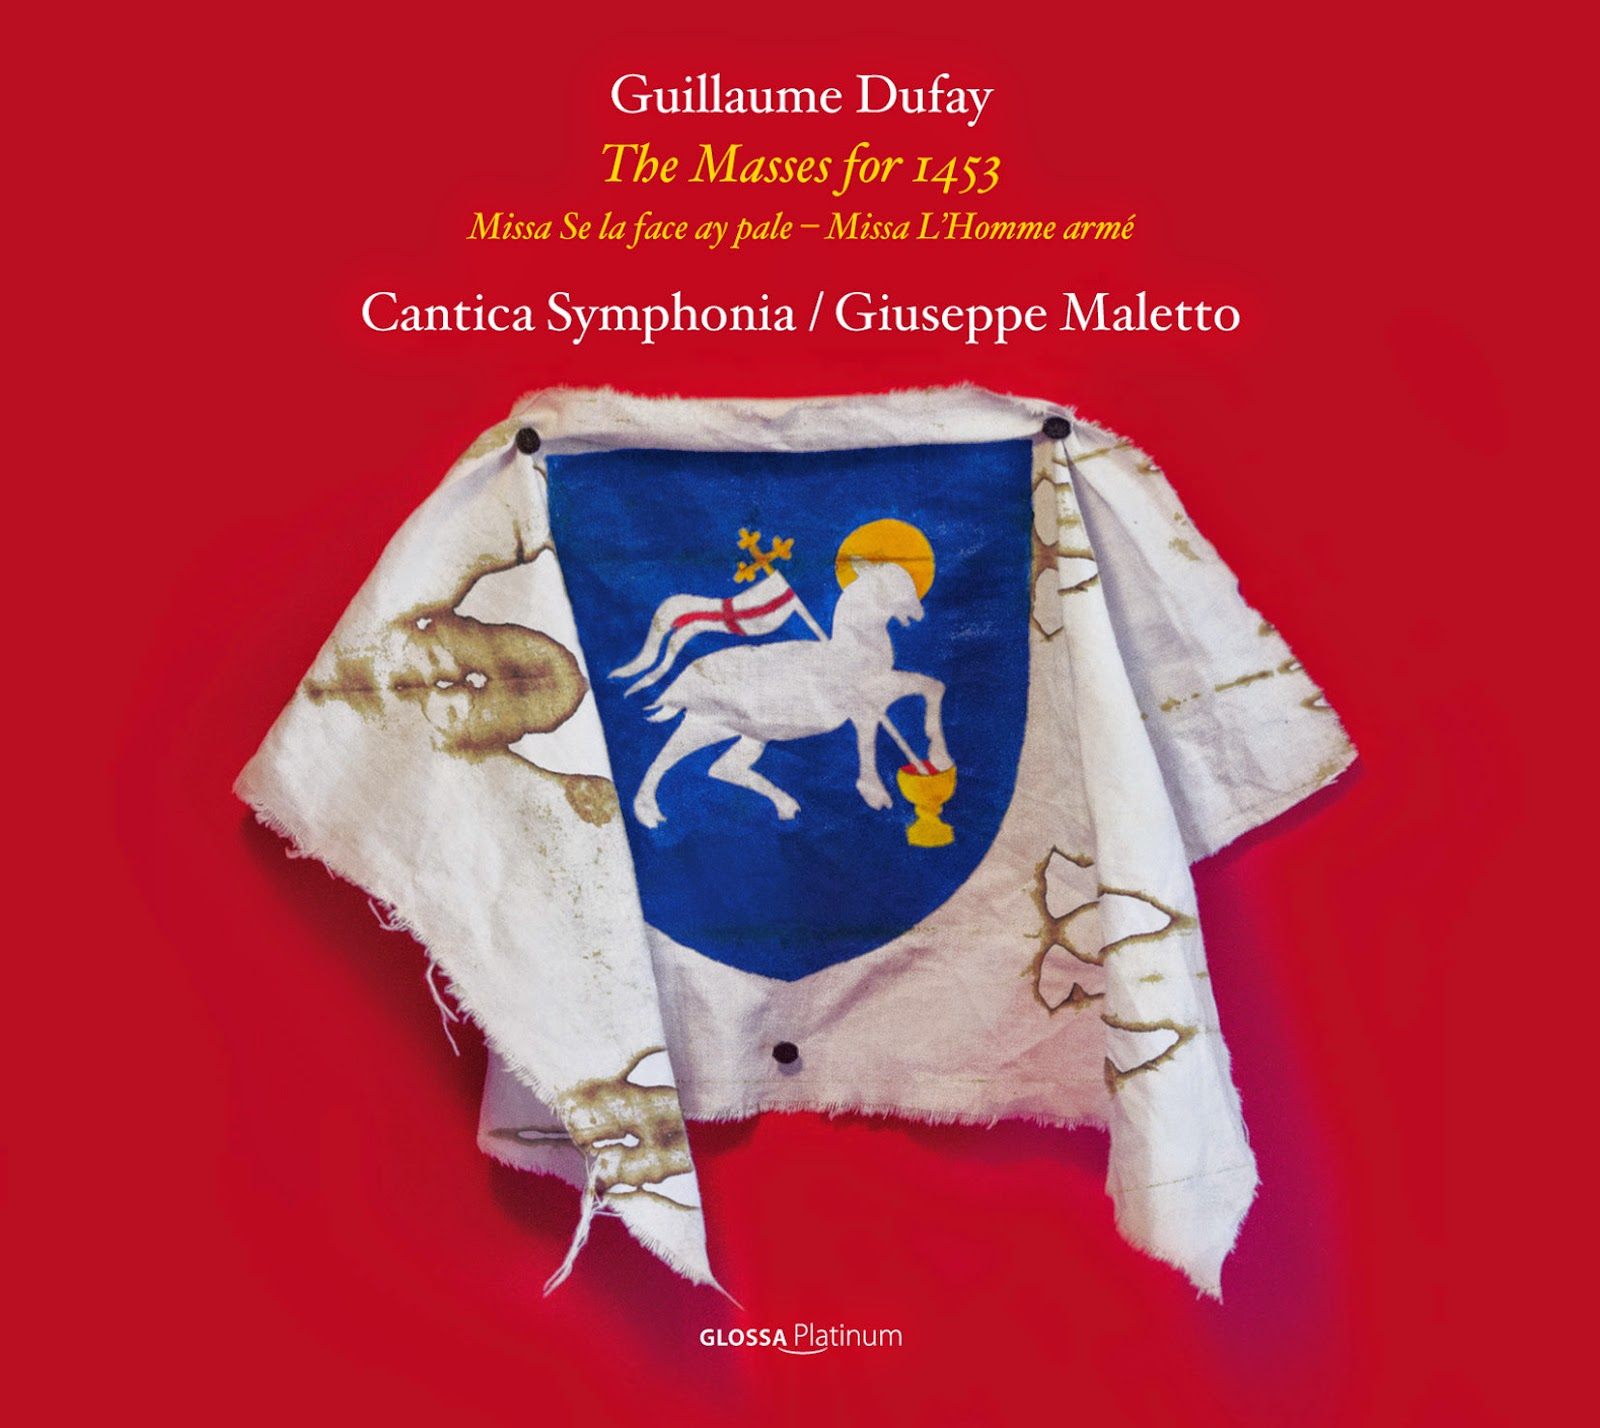 Dufay - The Masses for 1453 - Cantica Symphonia - Glossa